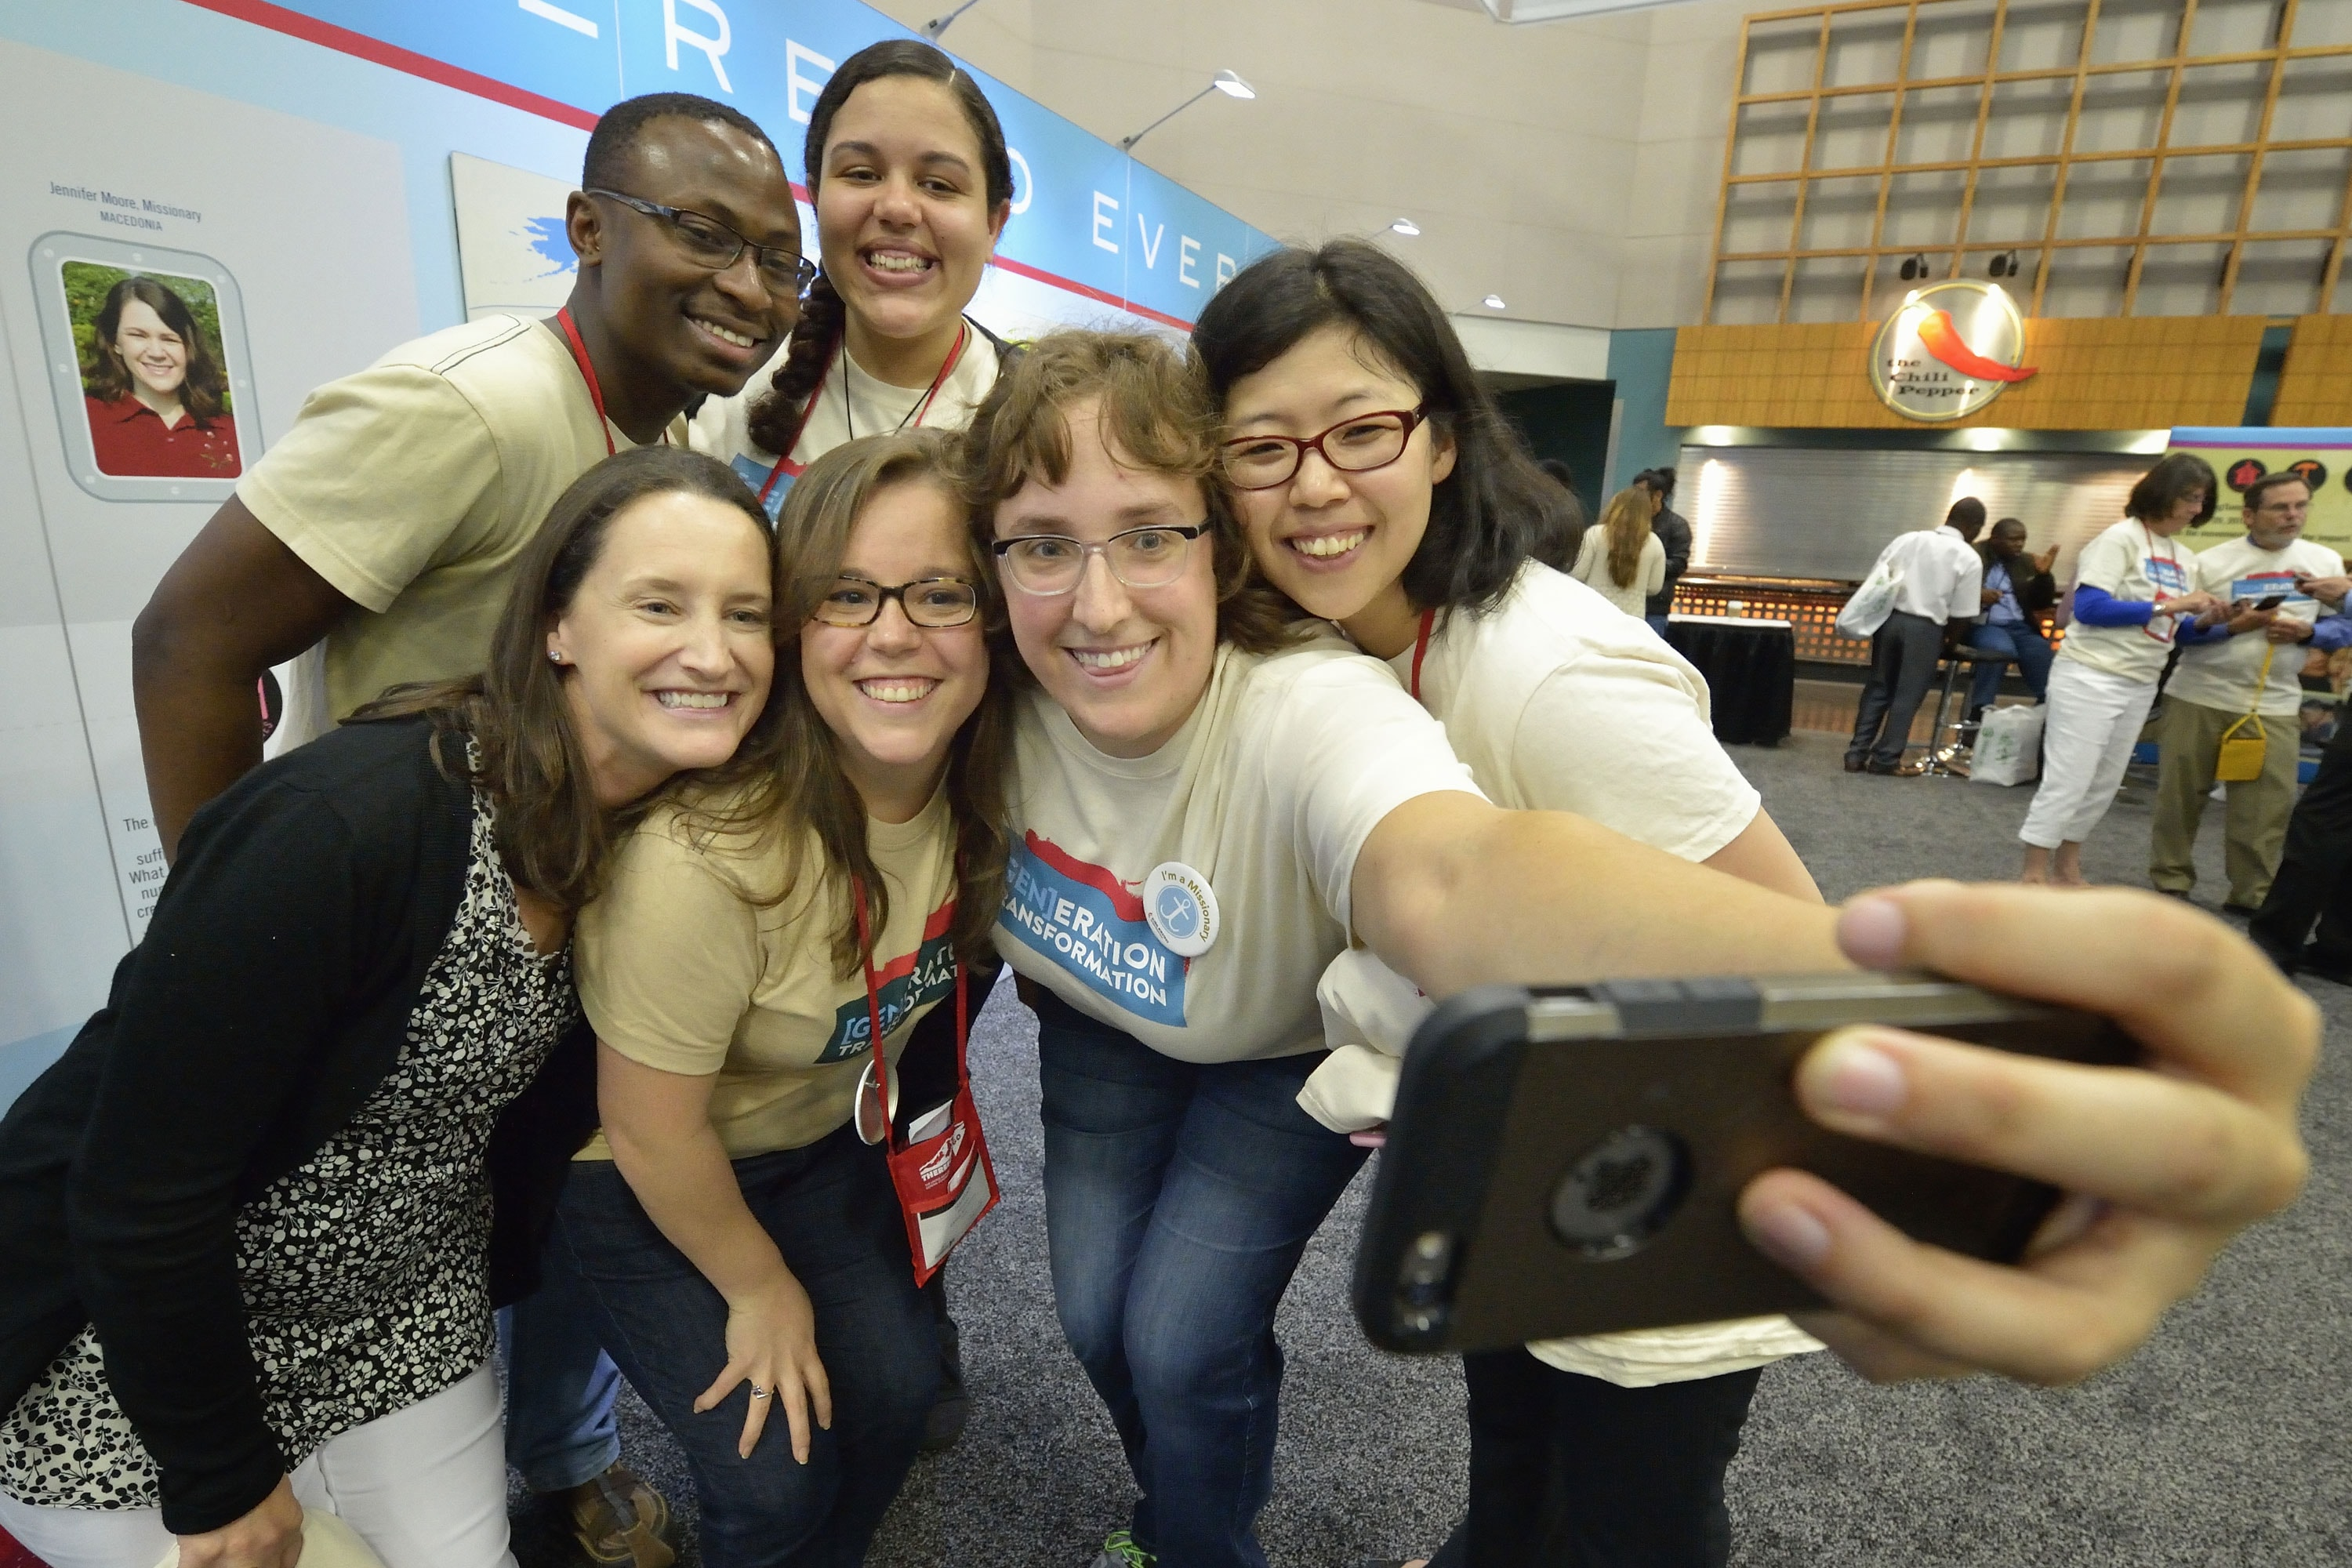 Young adult mission workers pose at the United Methodist Global Ministries exhibit at the 2016 United Methodist General Conference in Portland, Ore. Photo by Paul Jeffrey, United Methodist Communications.